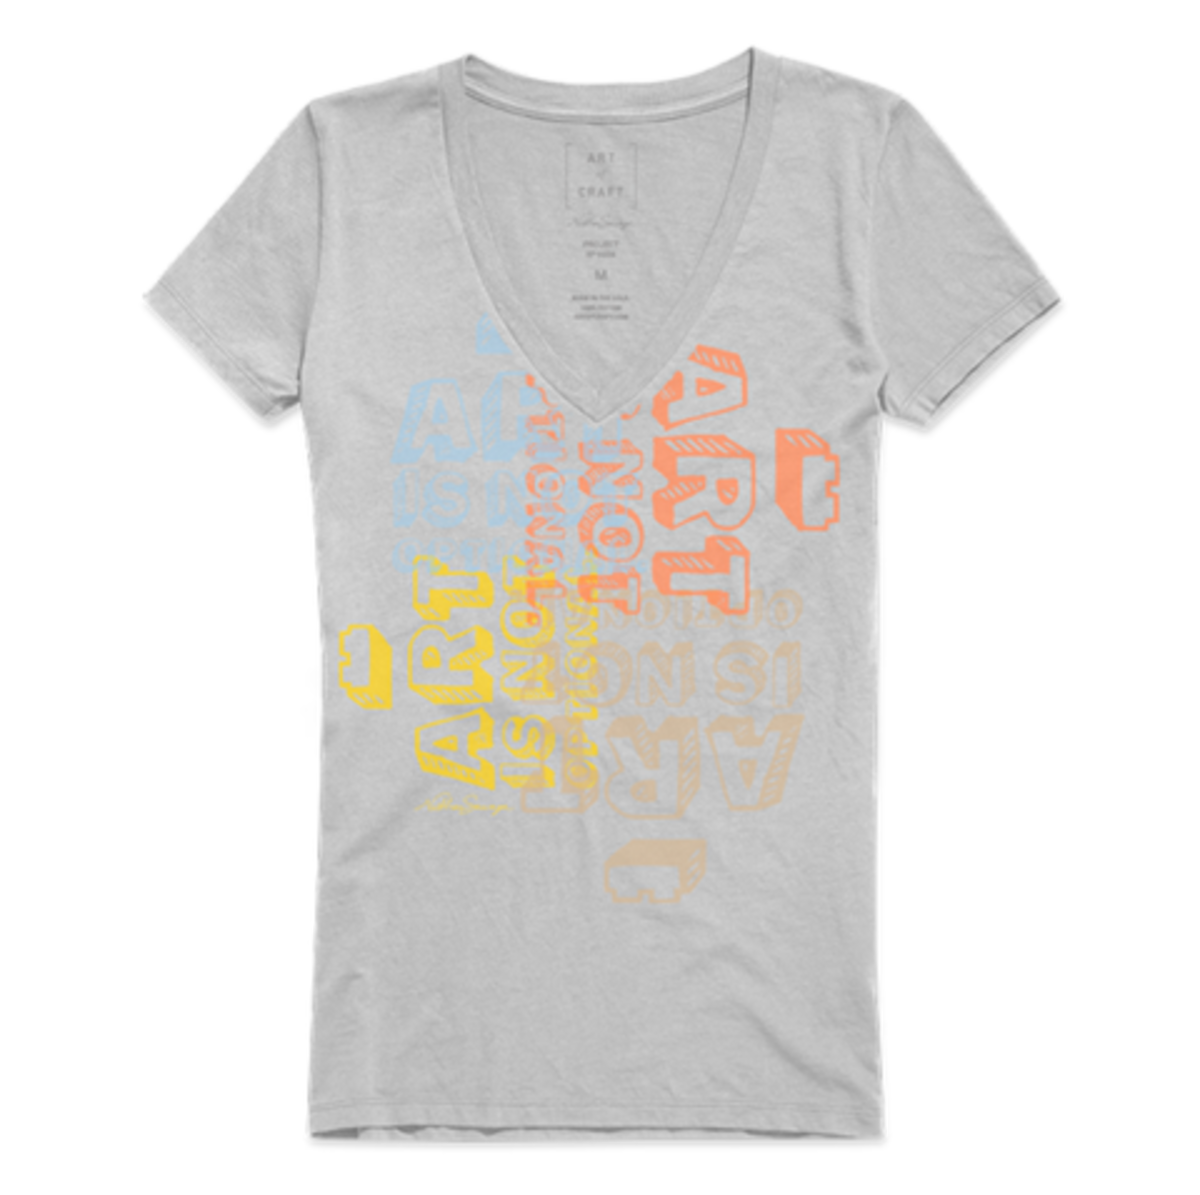 brickart_w_artisnotoptional_light_grey_v_neck_tee_shirt_large